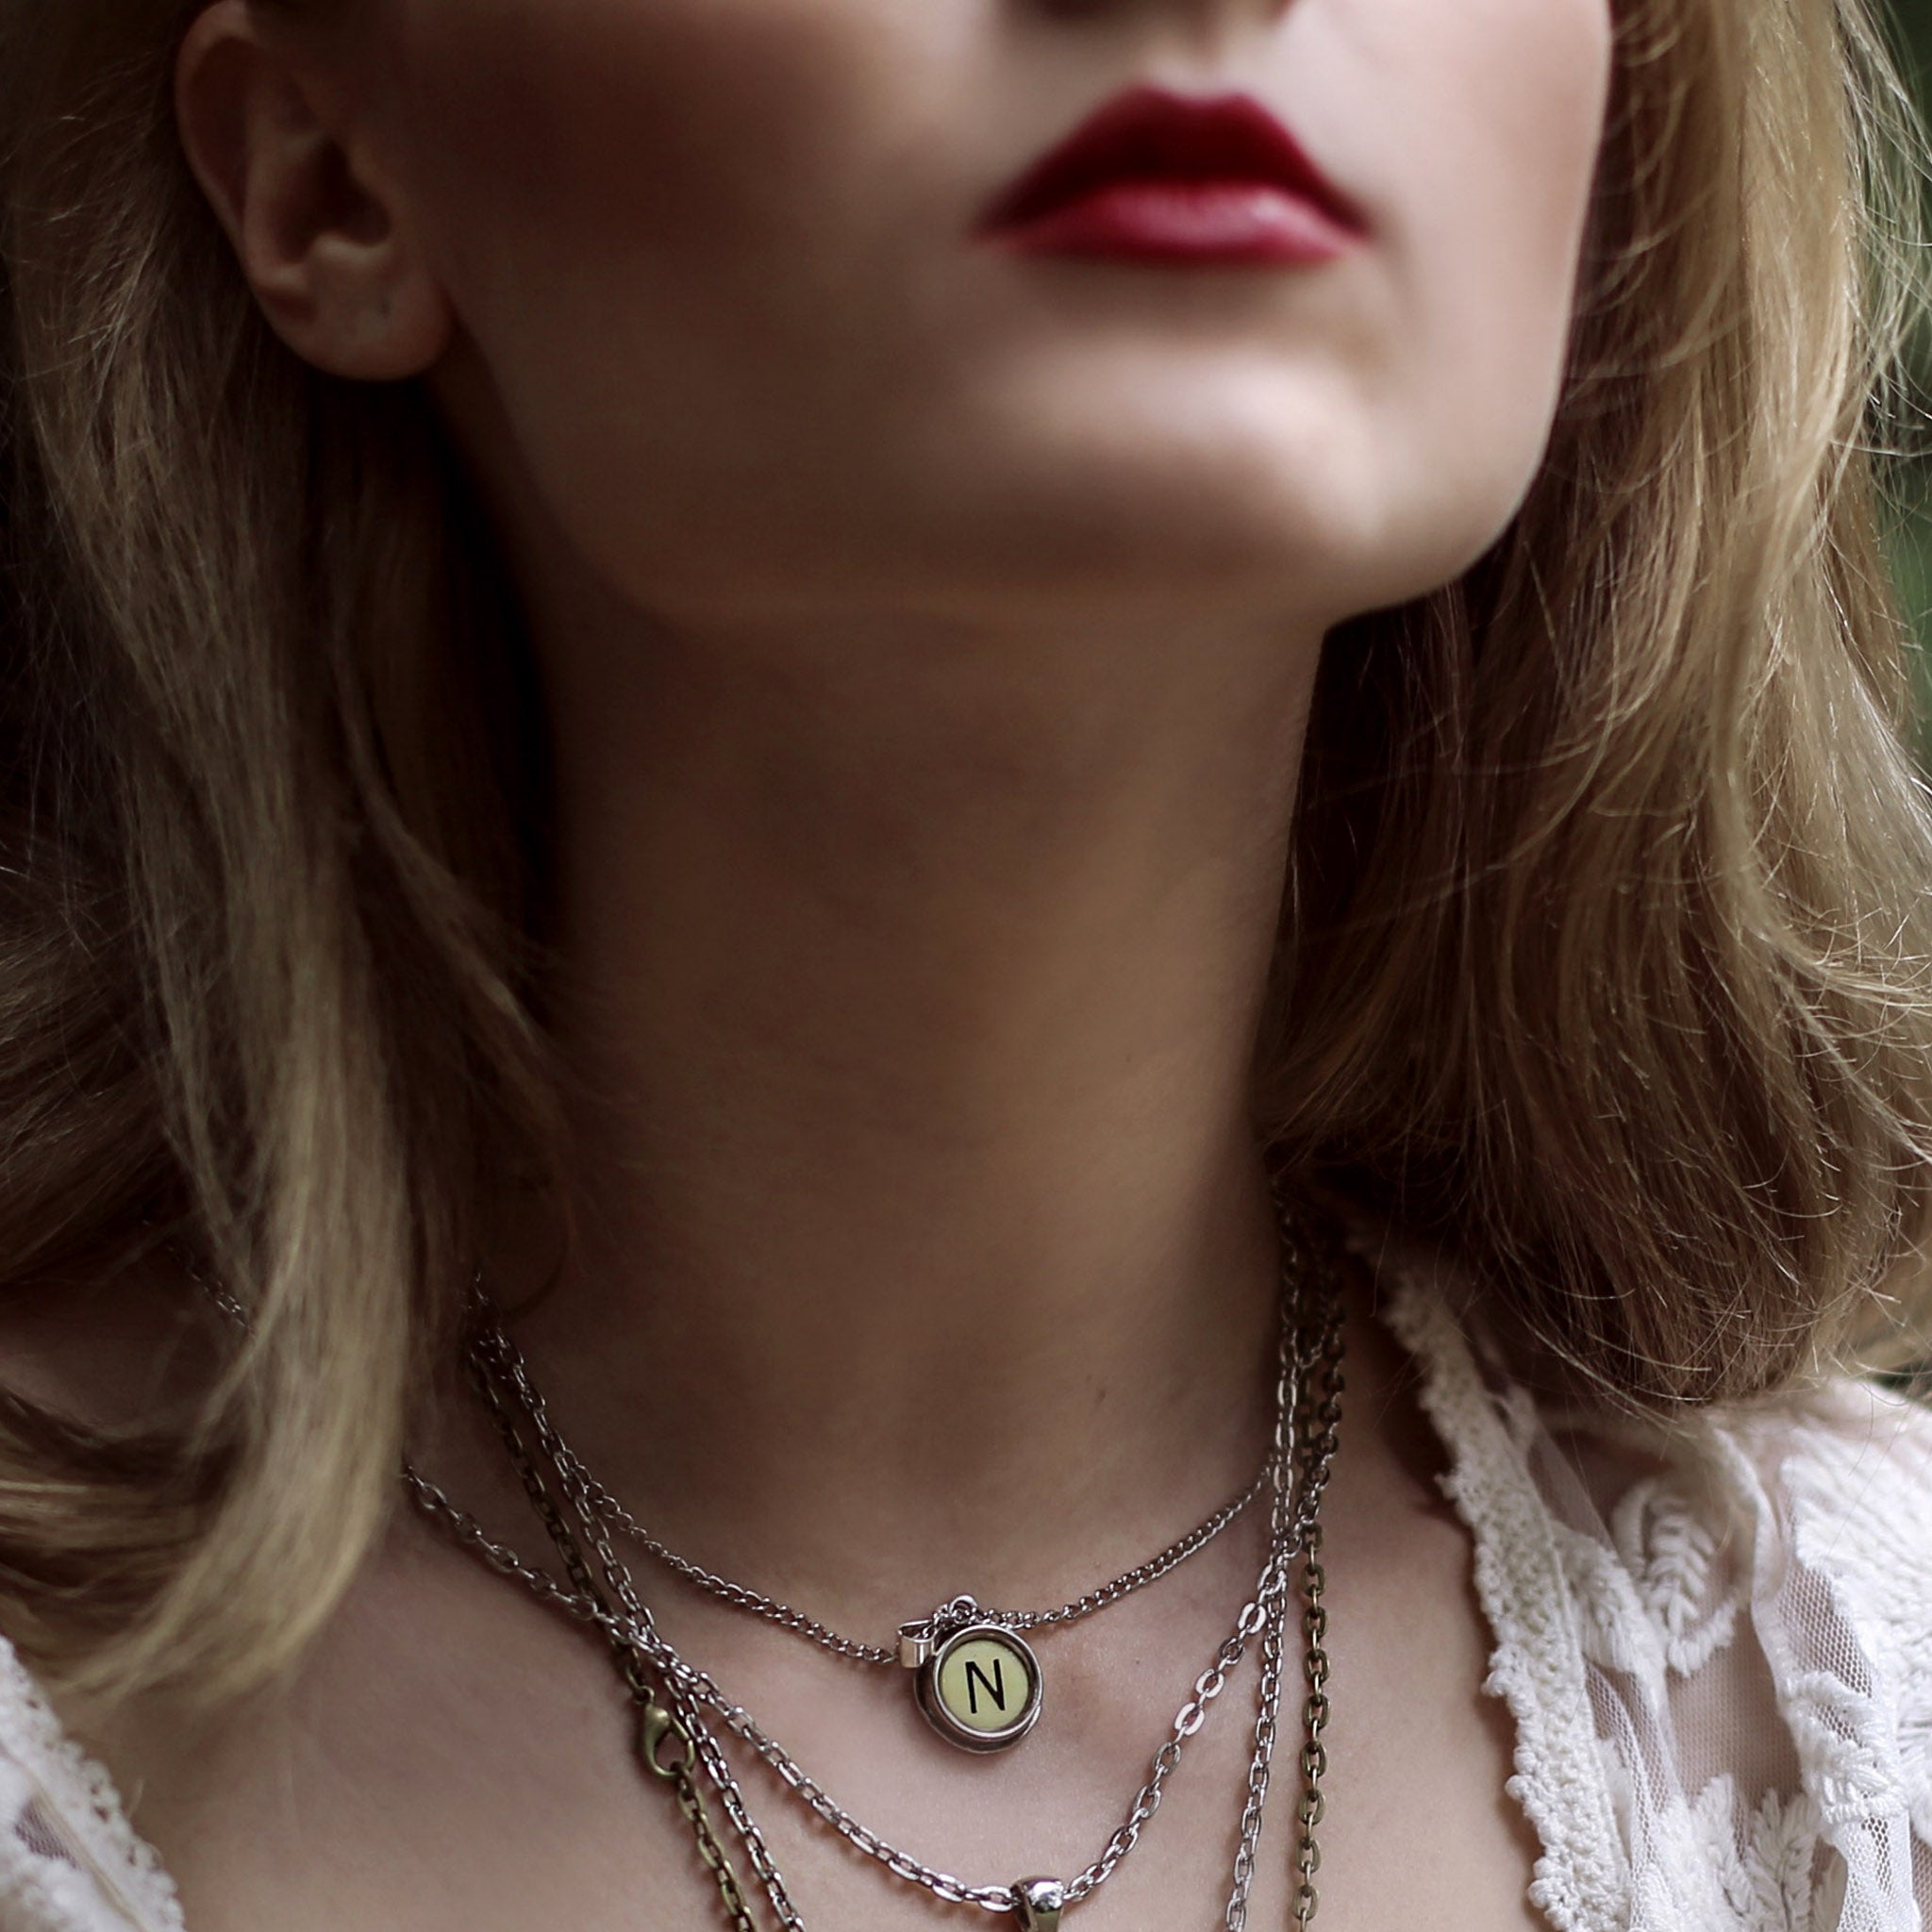 Model wearing a magnificent initial necklace made of authentic vintage typewriter key